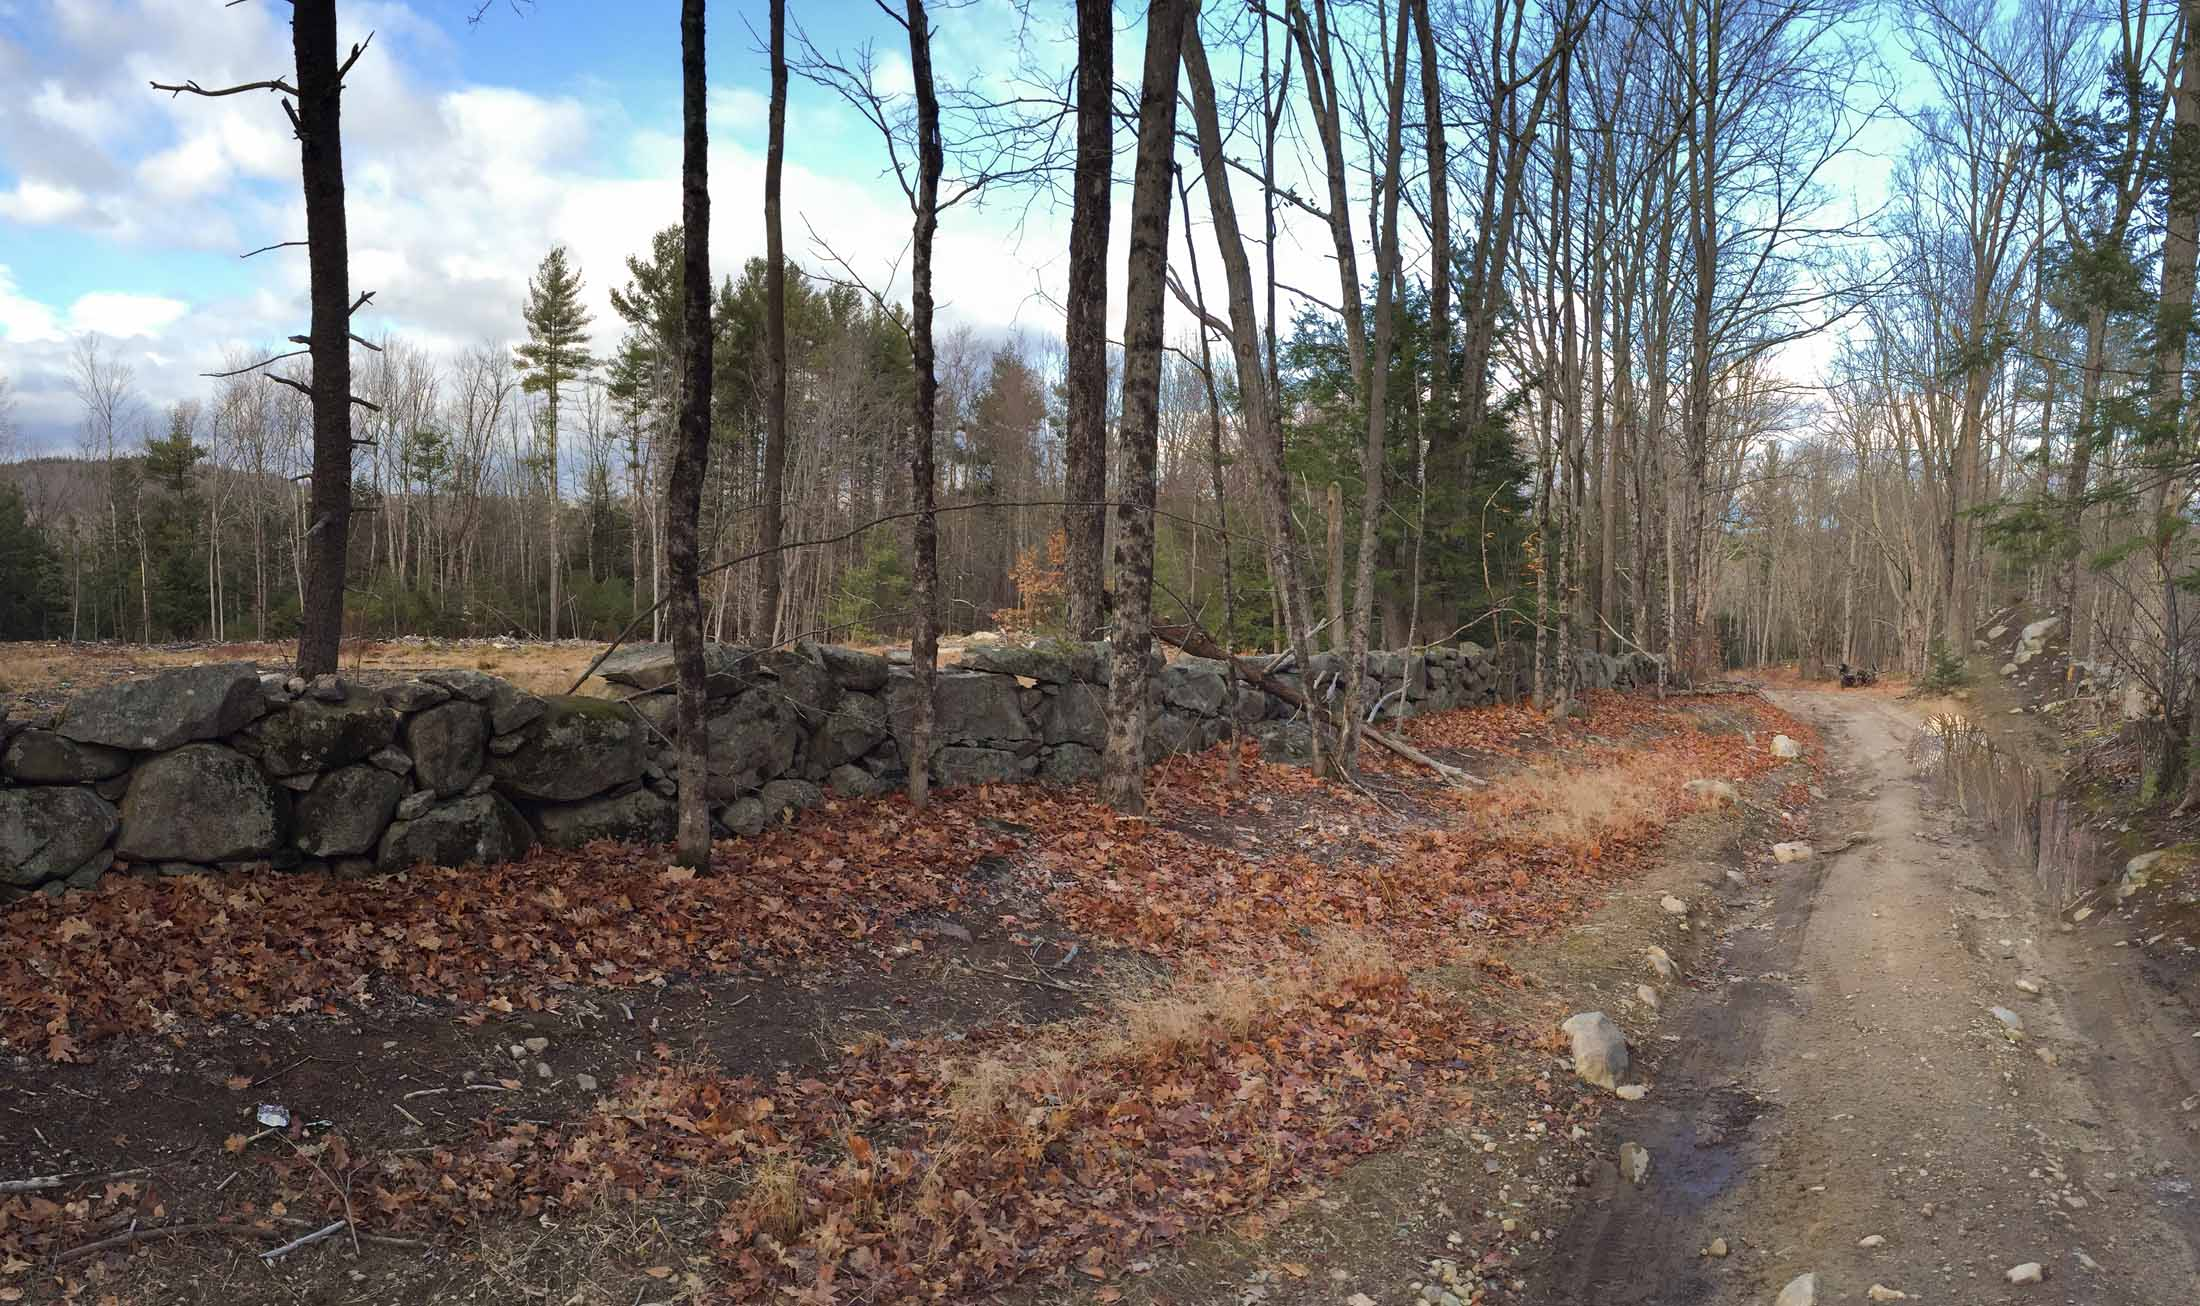 Land for Sale at 254 Acre Estate Parcel in Brookline 86 Hutchinson Hill Brookline, New Hampshire, 03033 United States